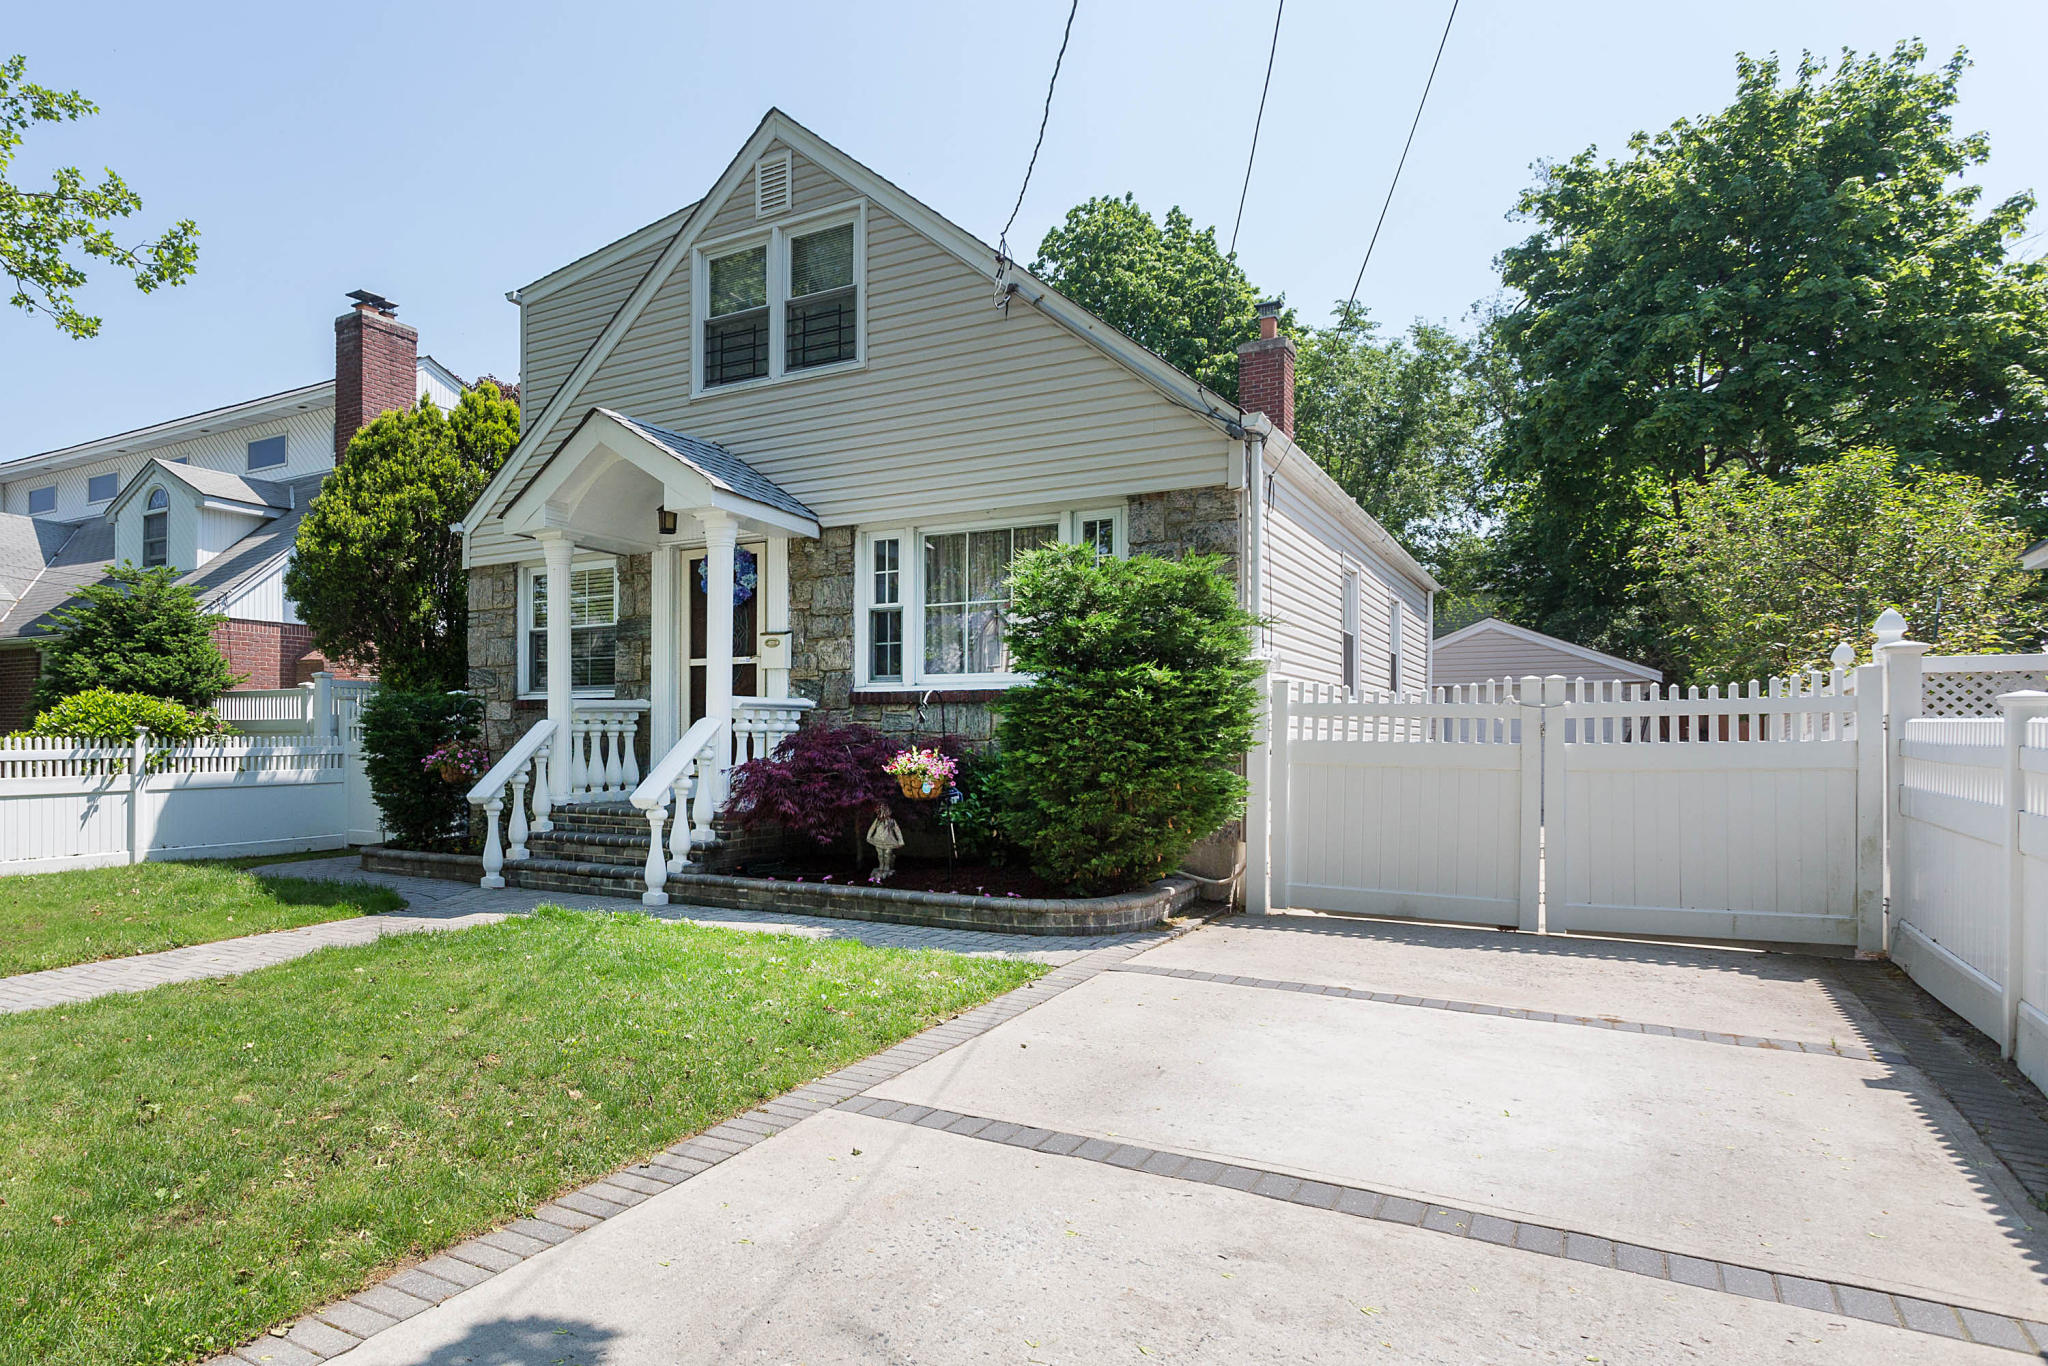 324 Yale Rd, Garden City, NY 11530 - Estimate and Home Details | Trulia